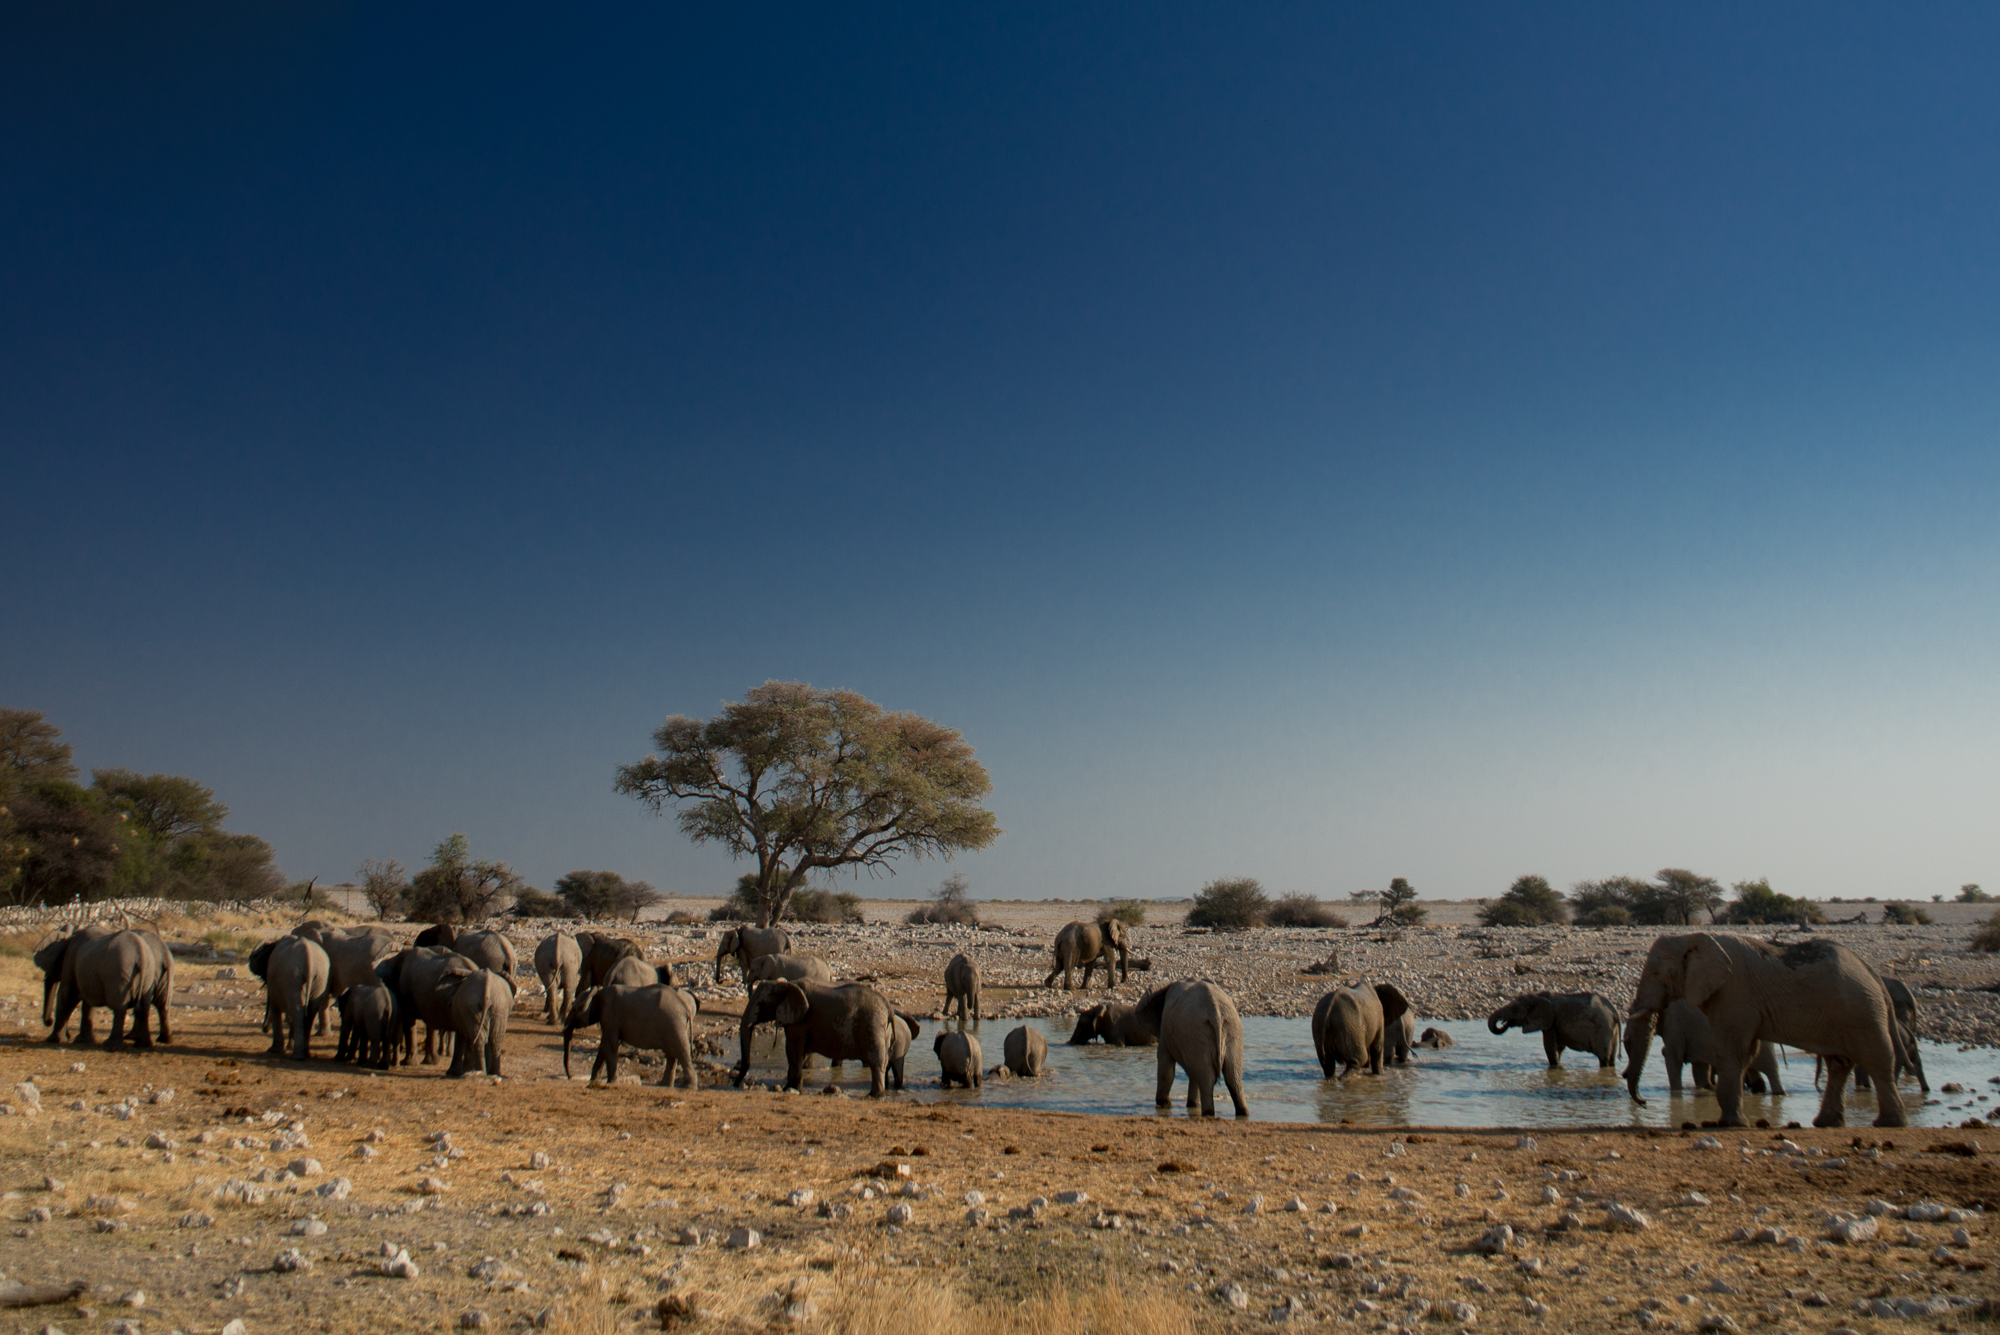 Elefants around the watering hole